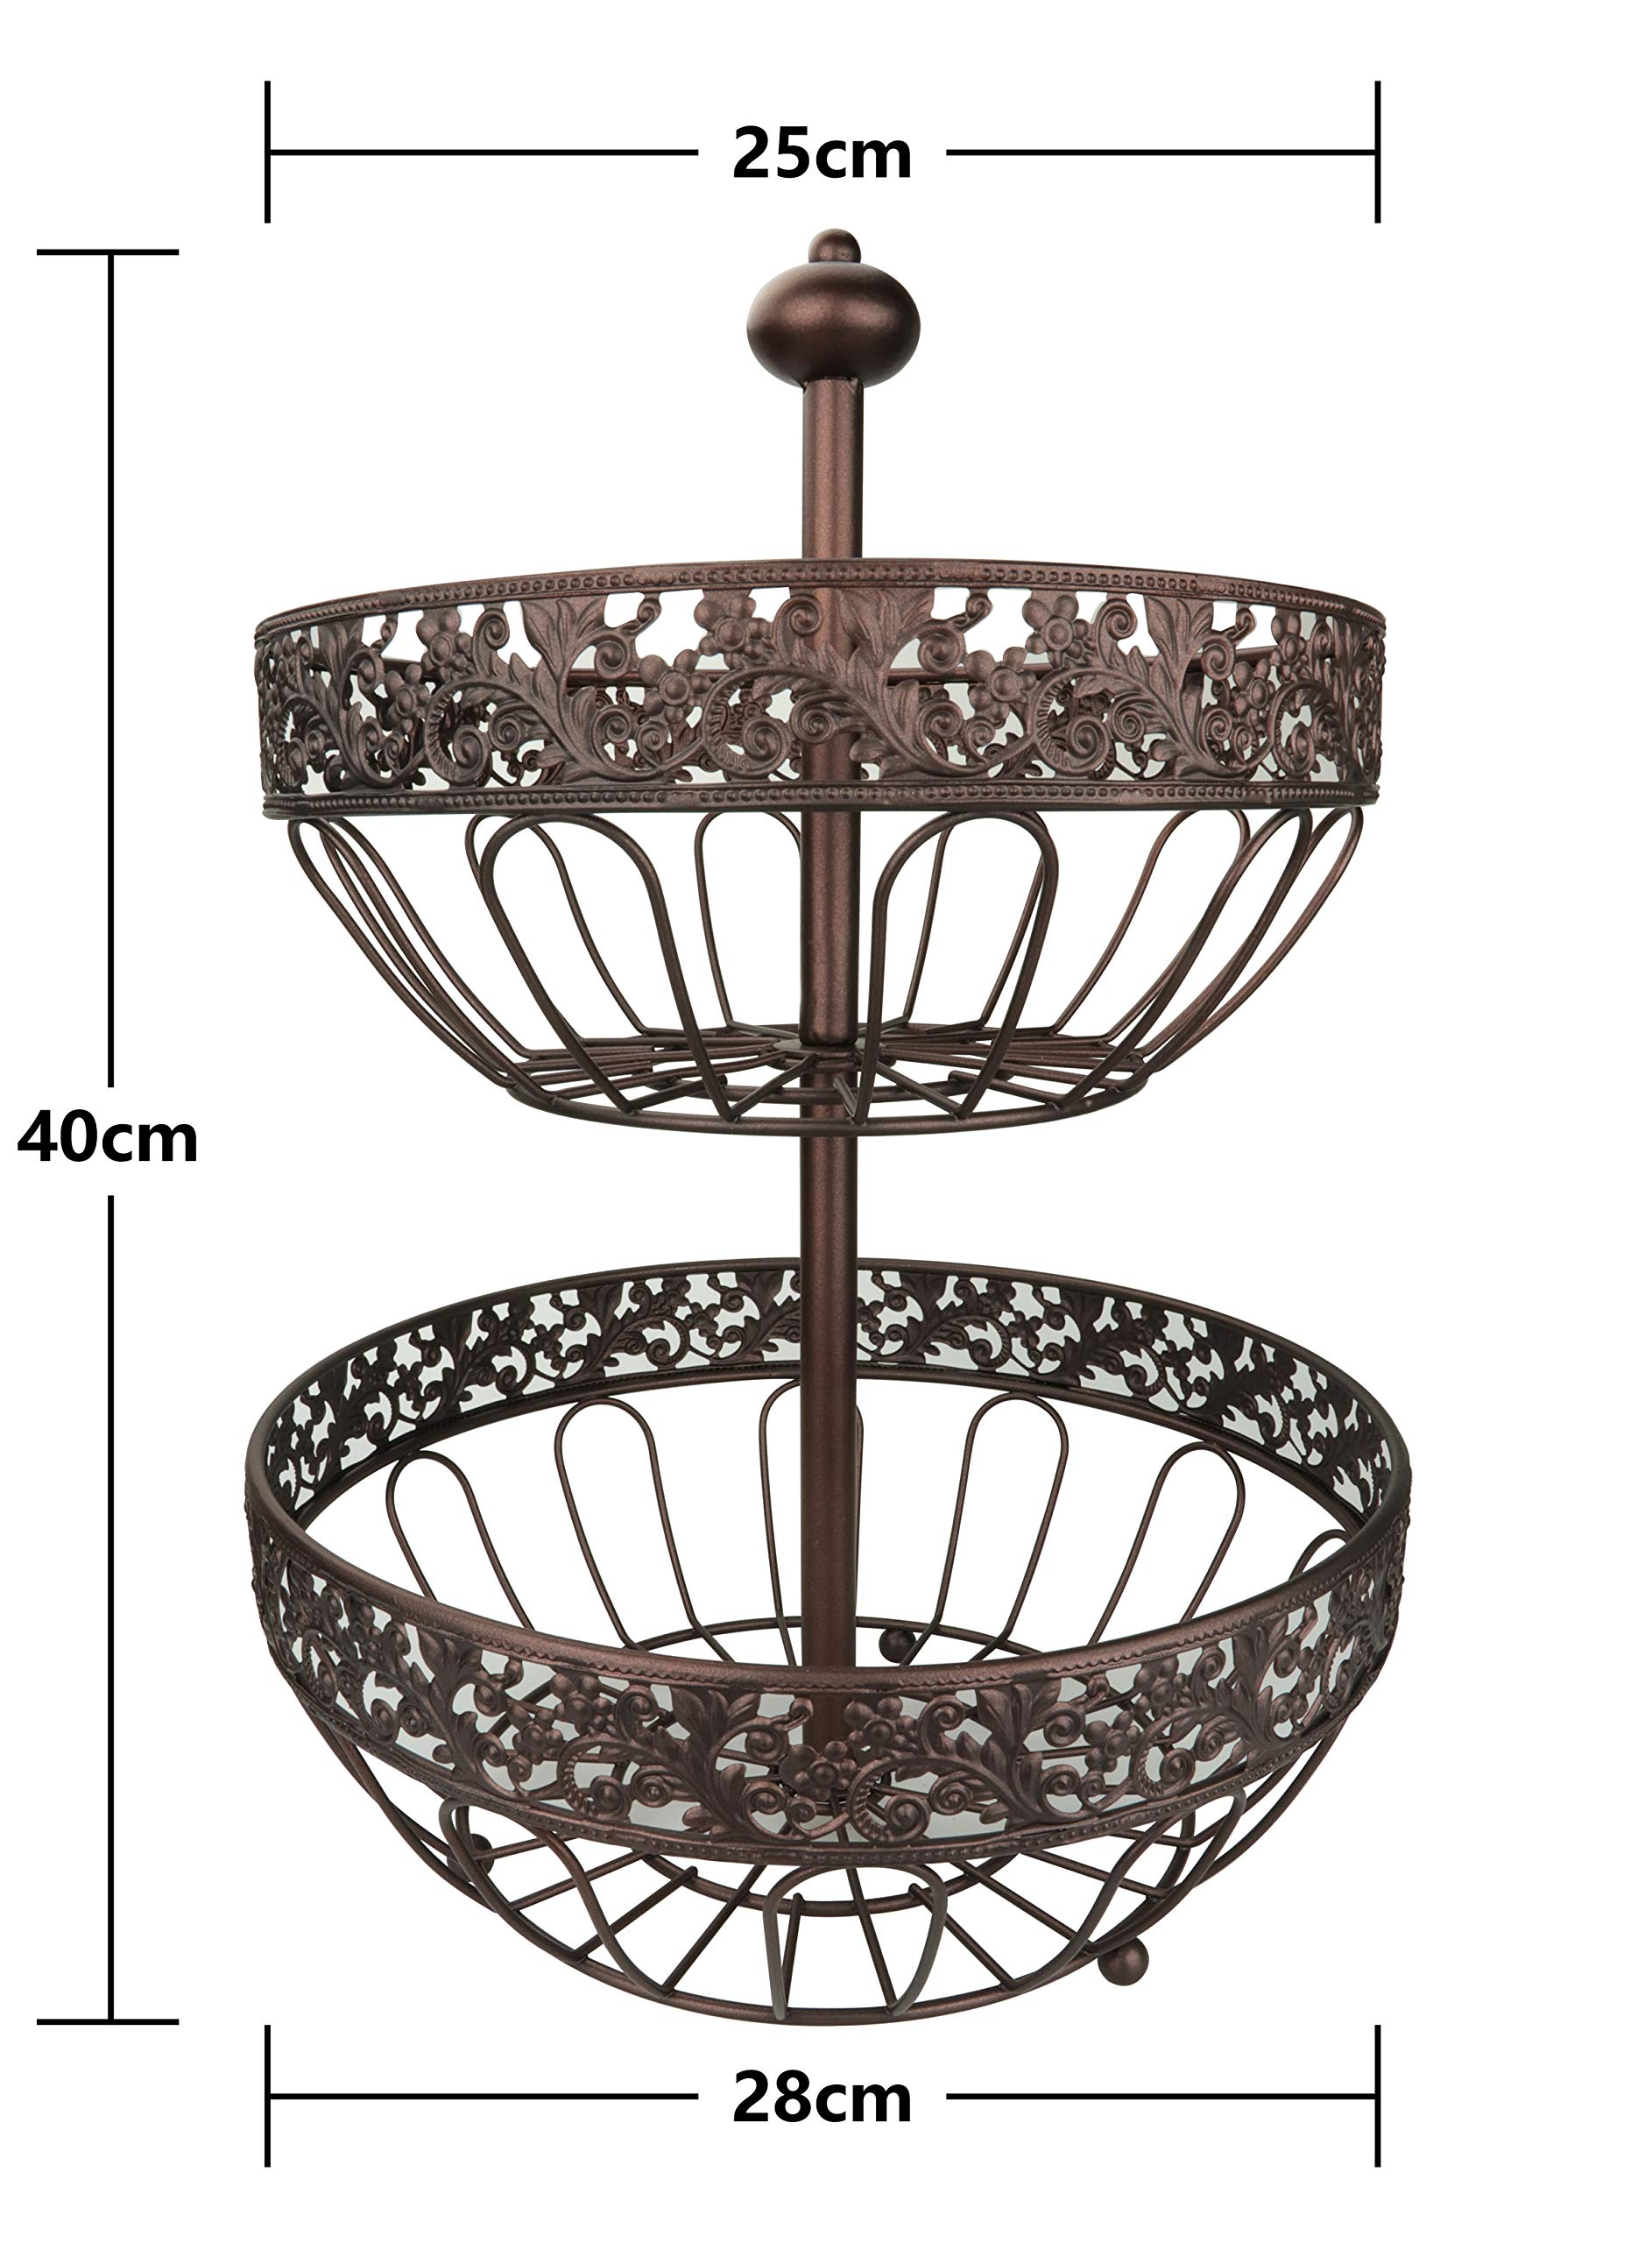 RosyLine 2-Tier Fruit Basket home Fruit Basket Decorative Display Stand, Multi purpose bowl, Home accent furnishings by DongJiang (Image #4)